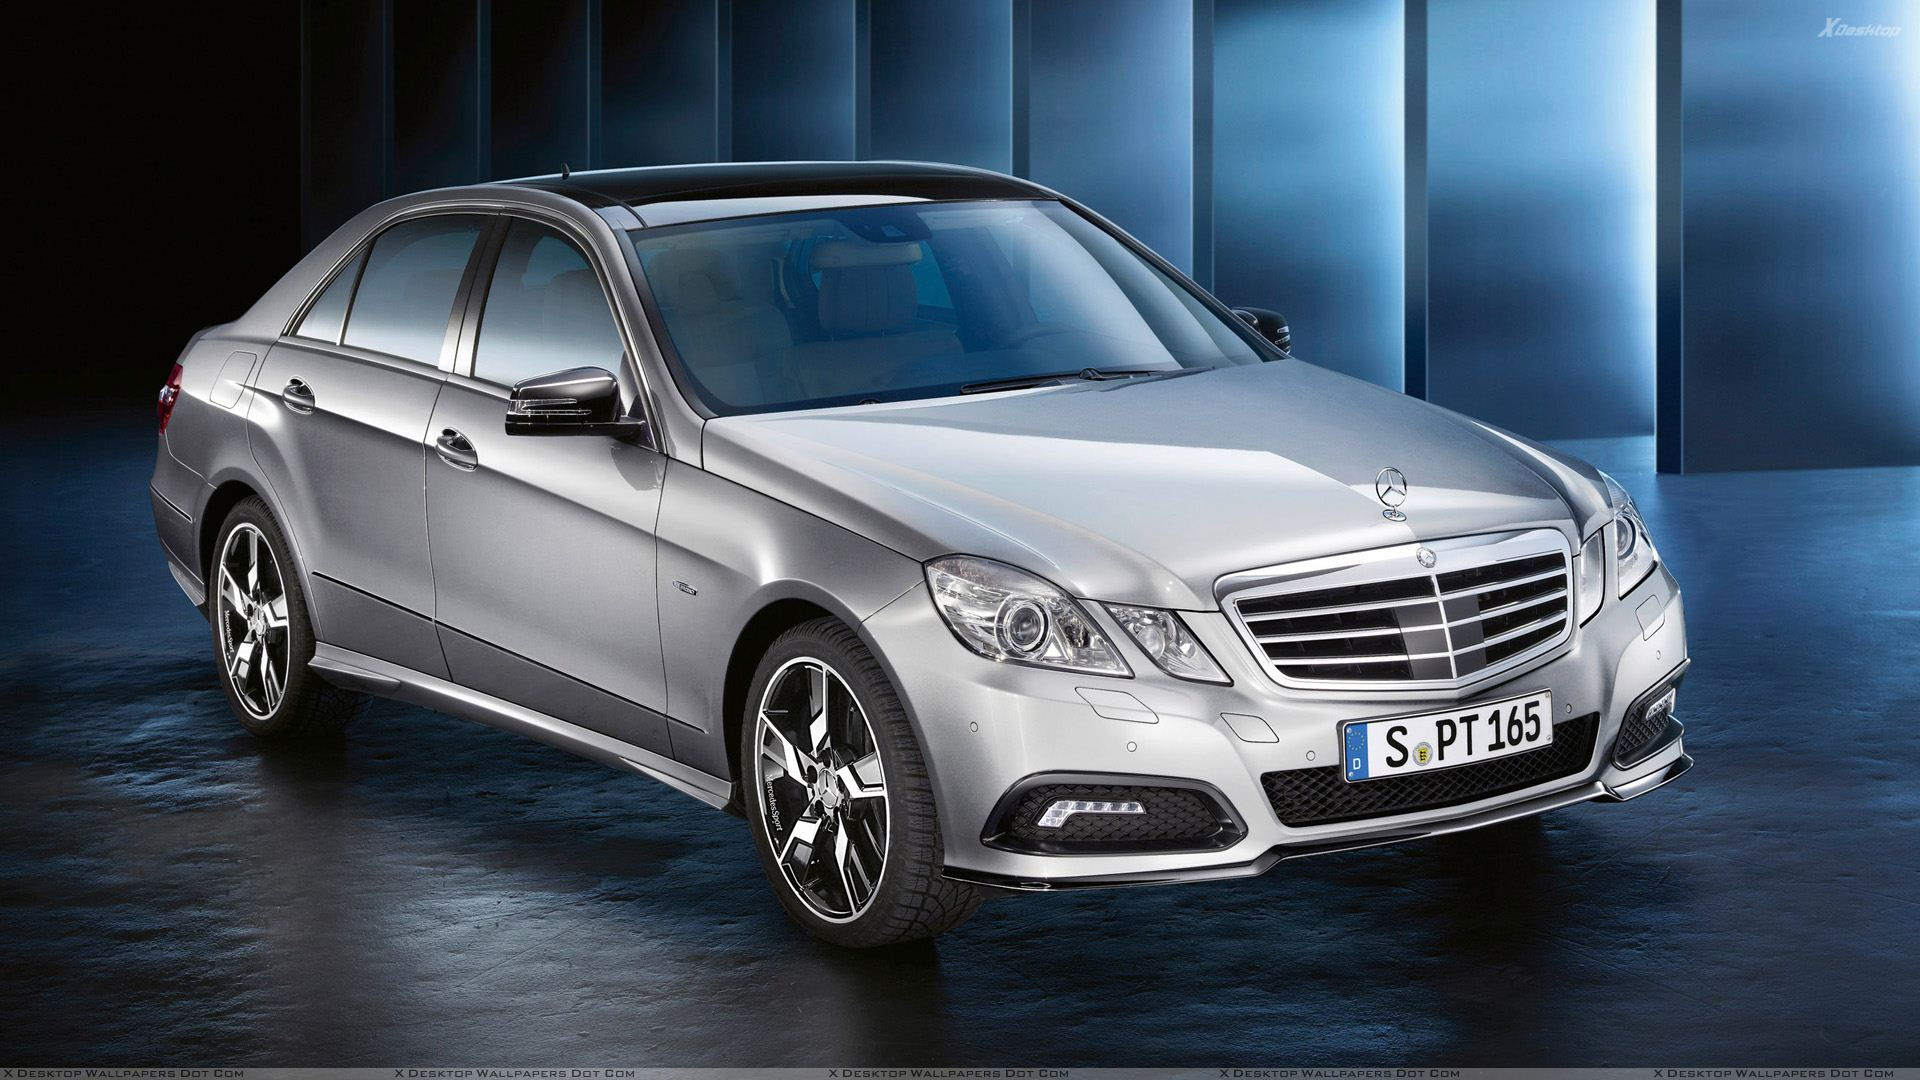 2010 mercedes benz sport e class in silver front side pose